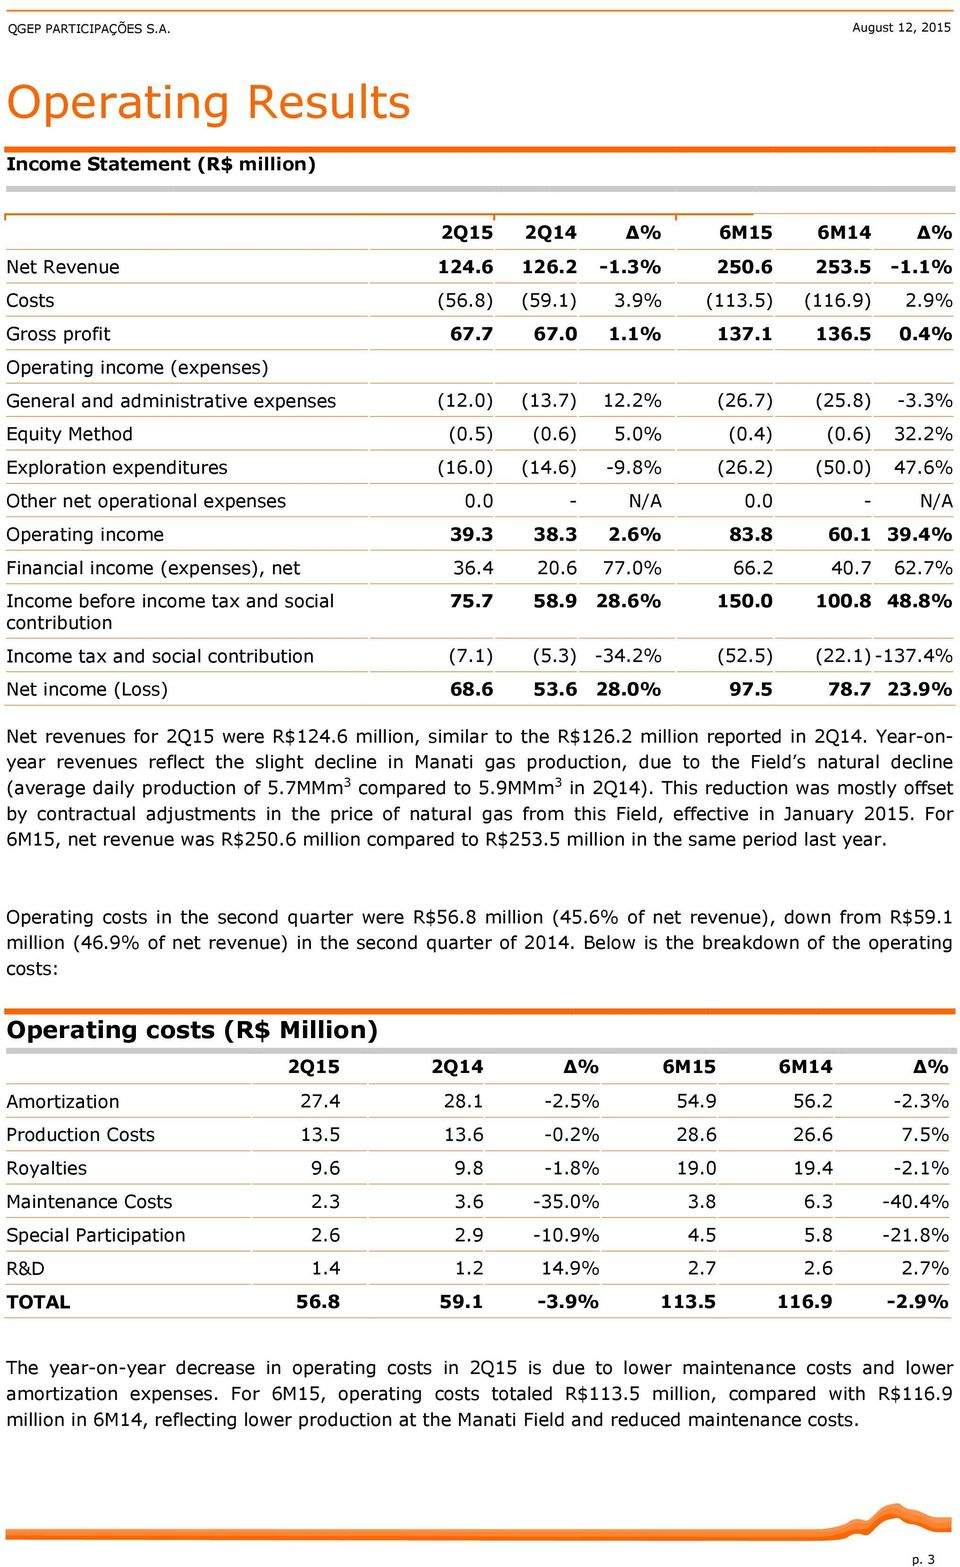 6) 32.2% Exploration expenditures (16.0) (14.6) -9.8% (26.2) (50.0) 47.6% Other net operational expenses 0.0 - N/A 0.0 - N/A Operating income 39.3 38.3 2.6% 83.8 60.1 39.